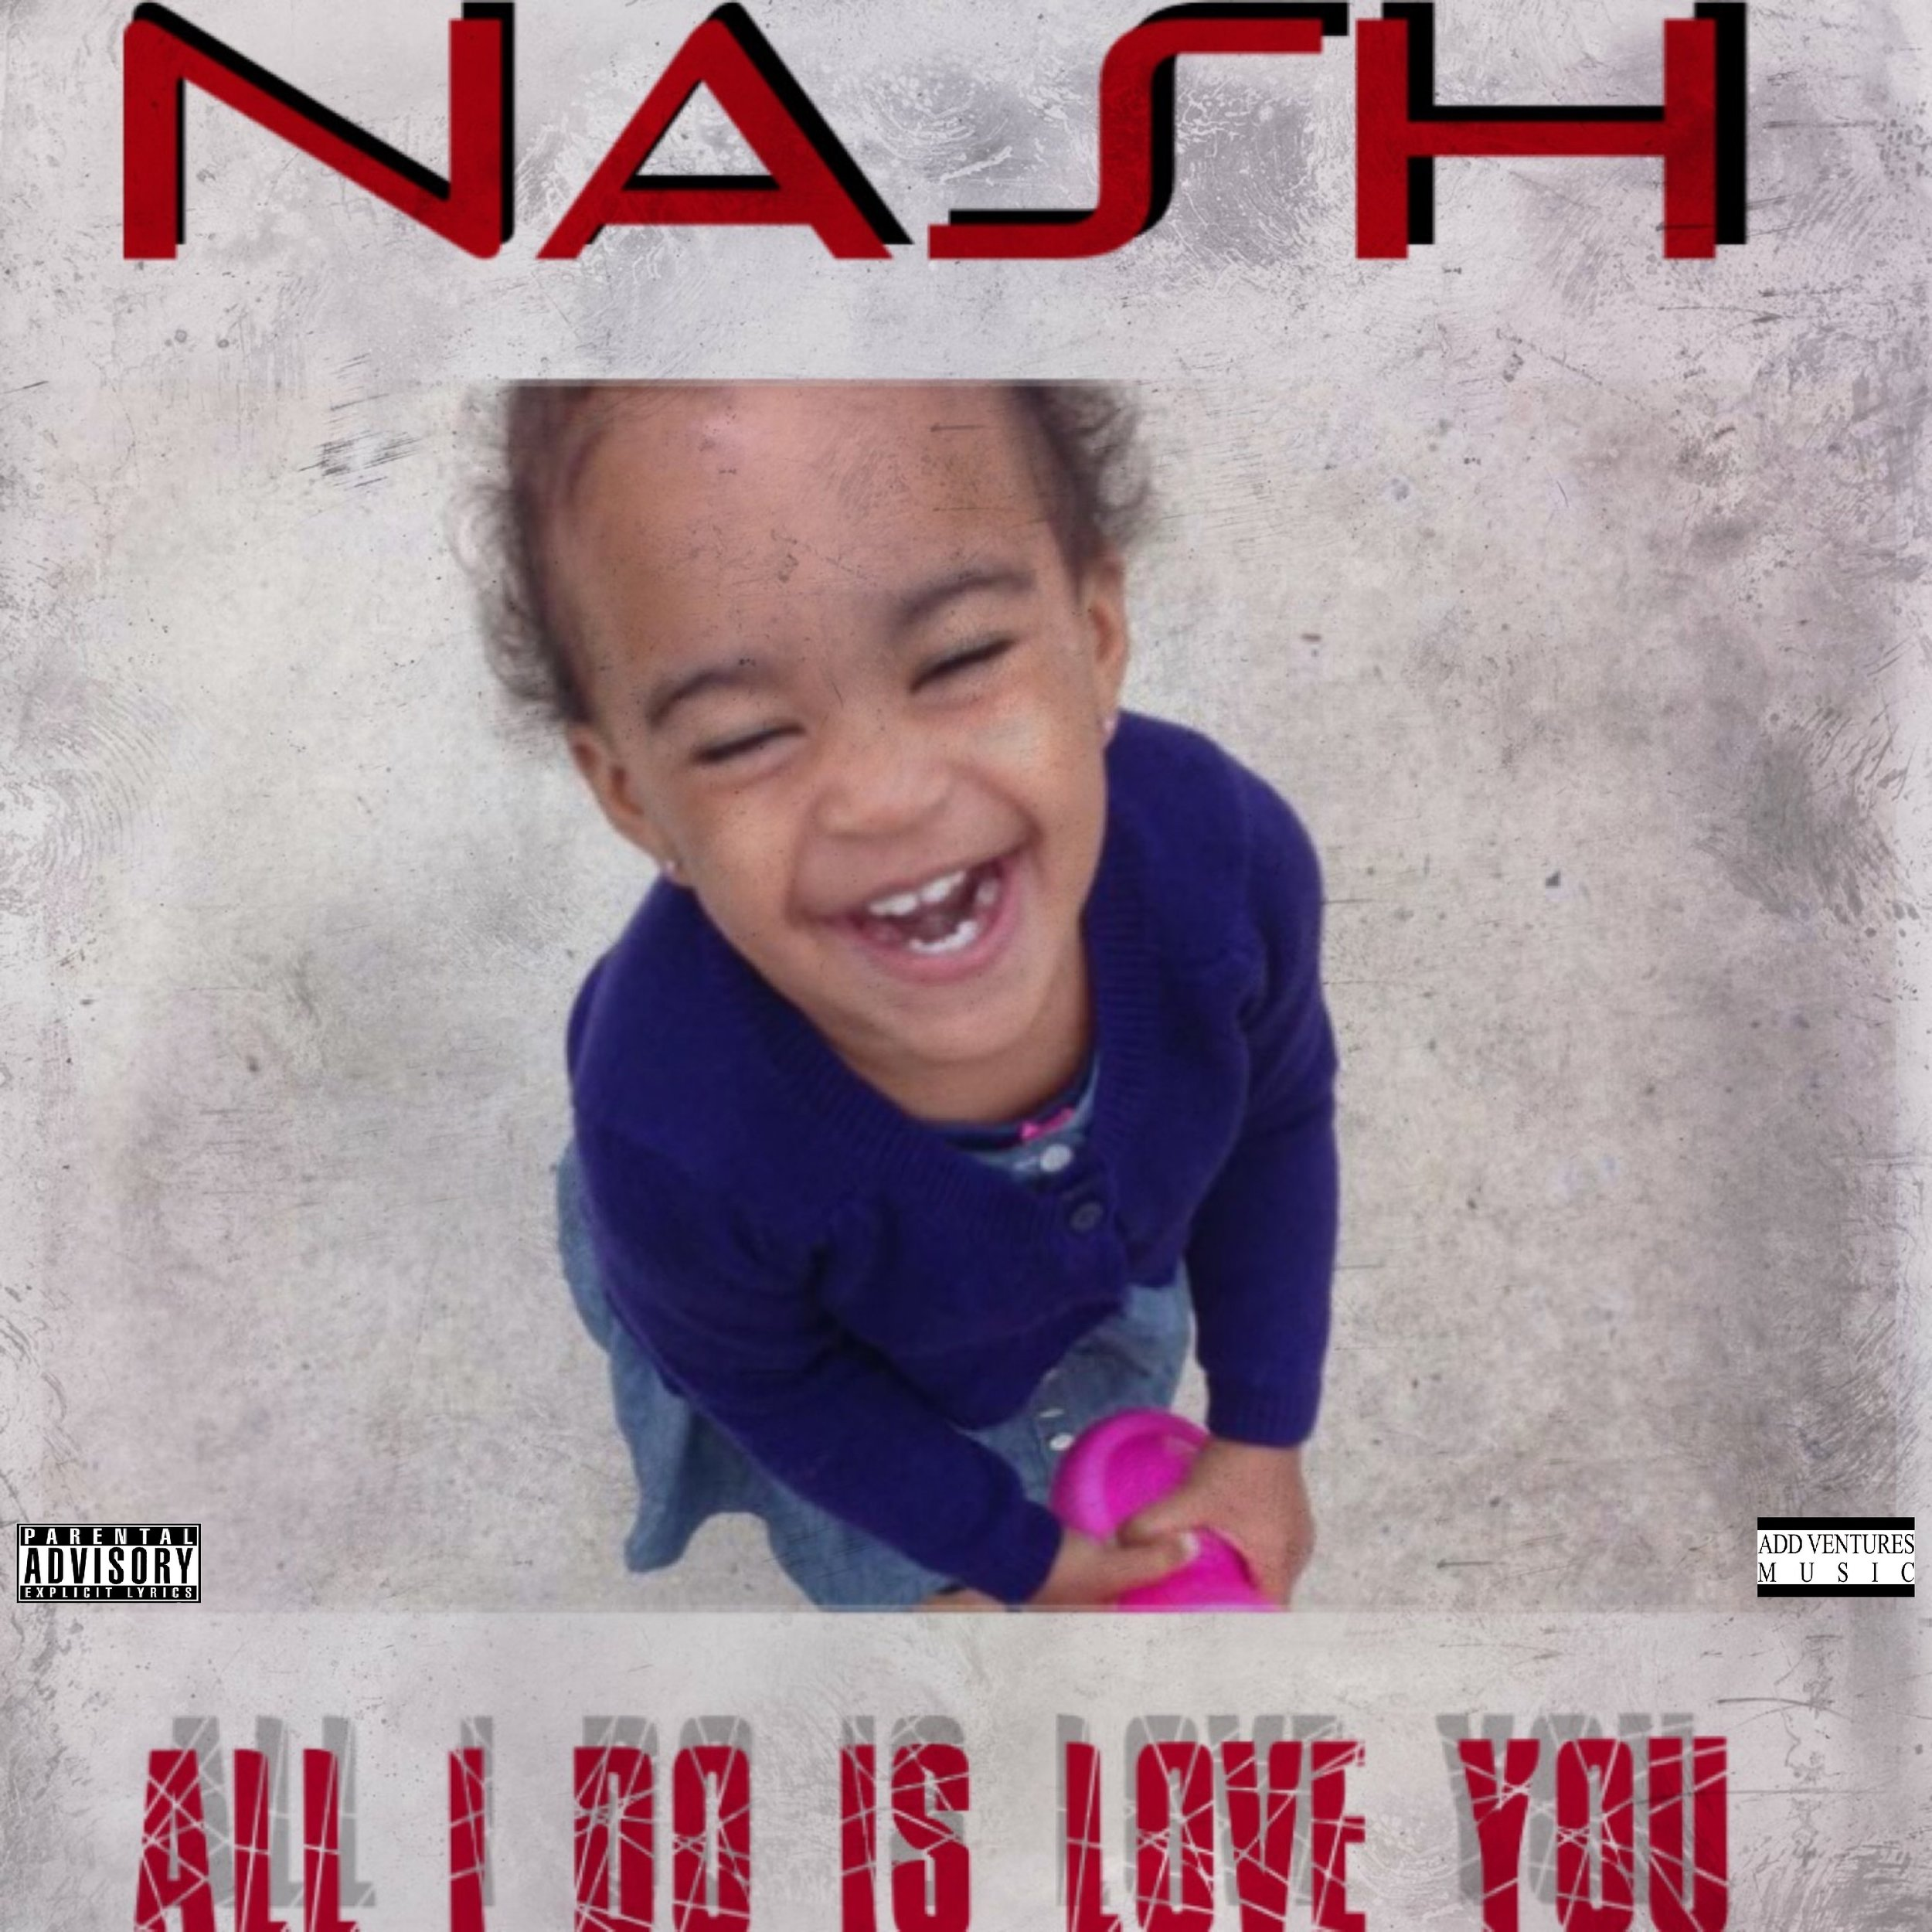 Nash - All I do is Love You - Explicit Cover.jpg